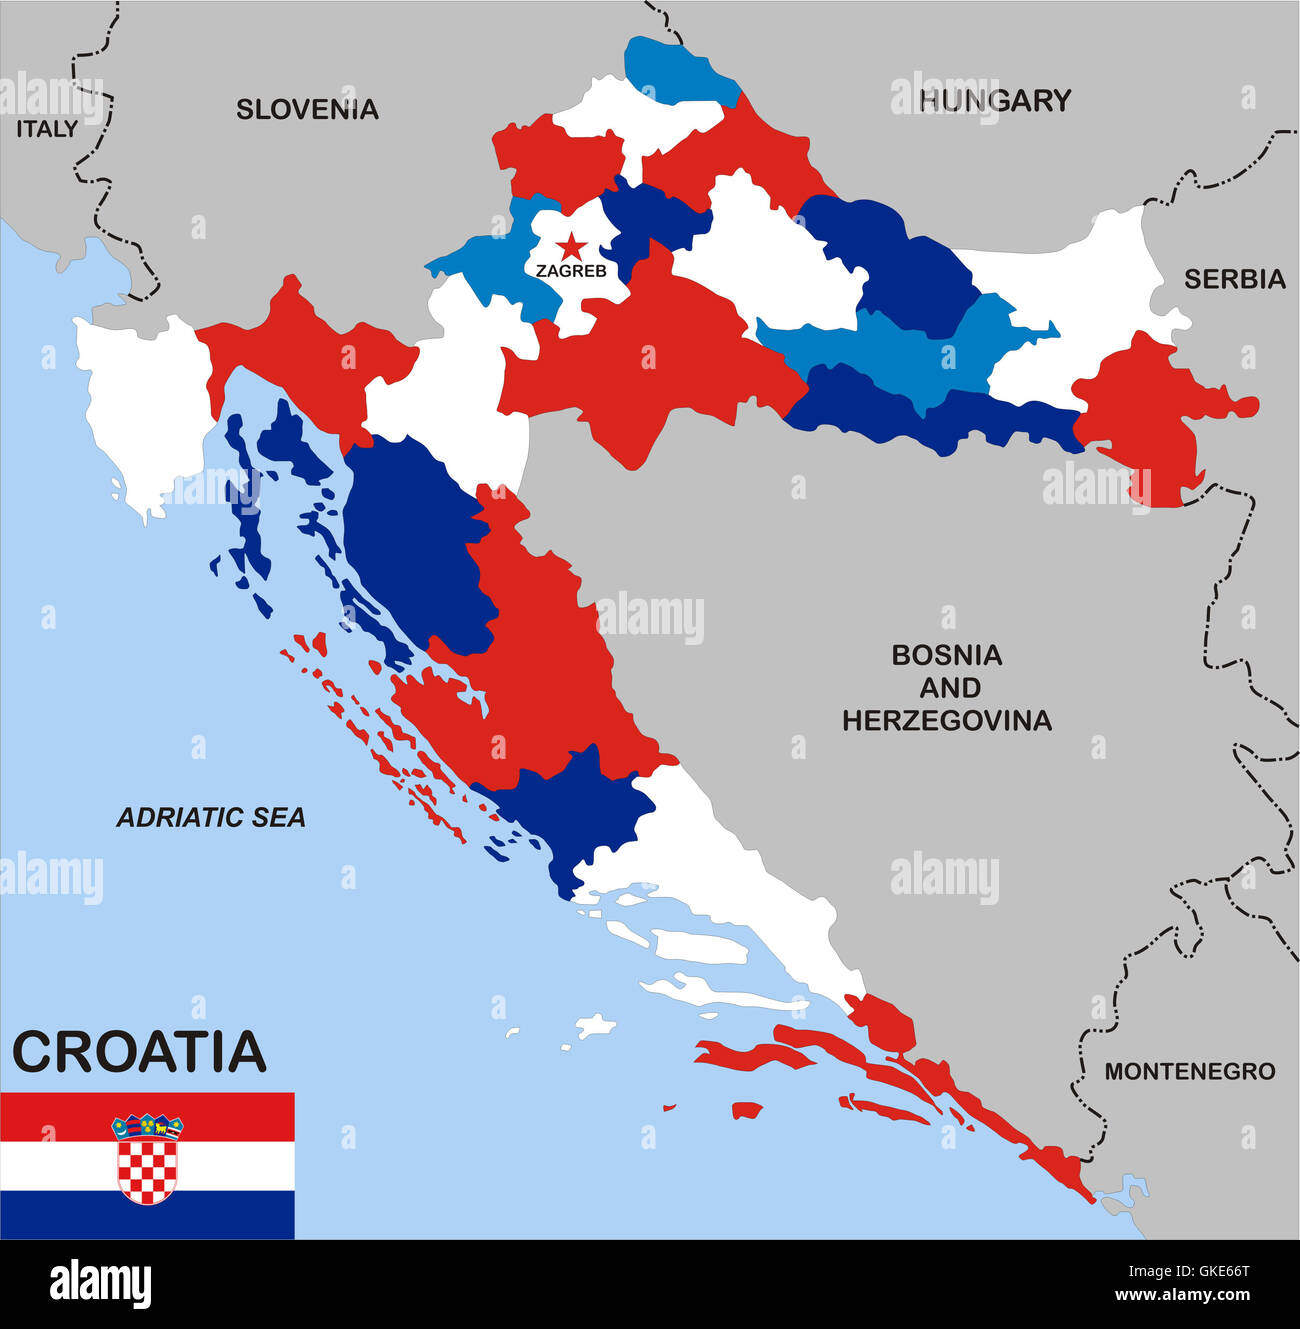 croatia political map Stock Photo Royalty Free Image 115252896 Alamy